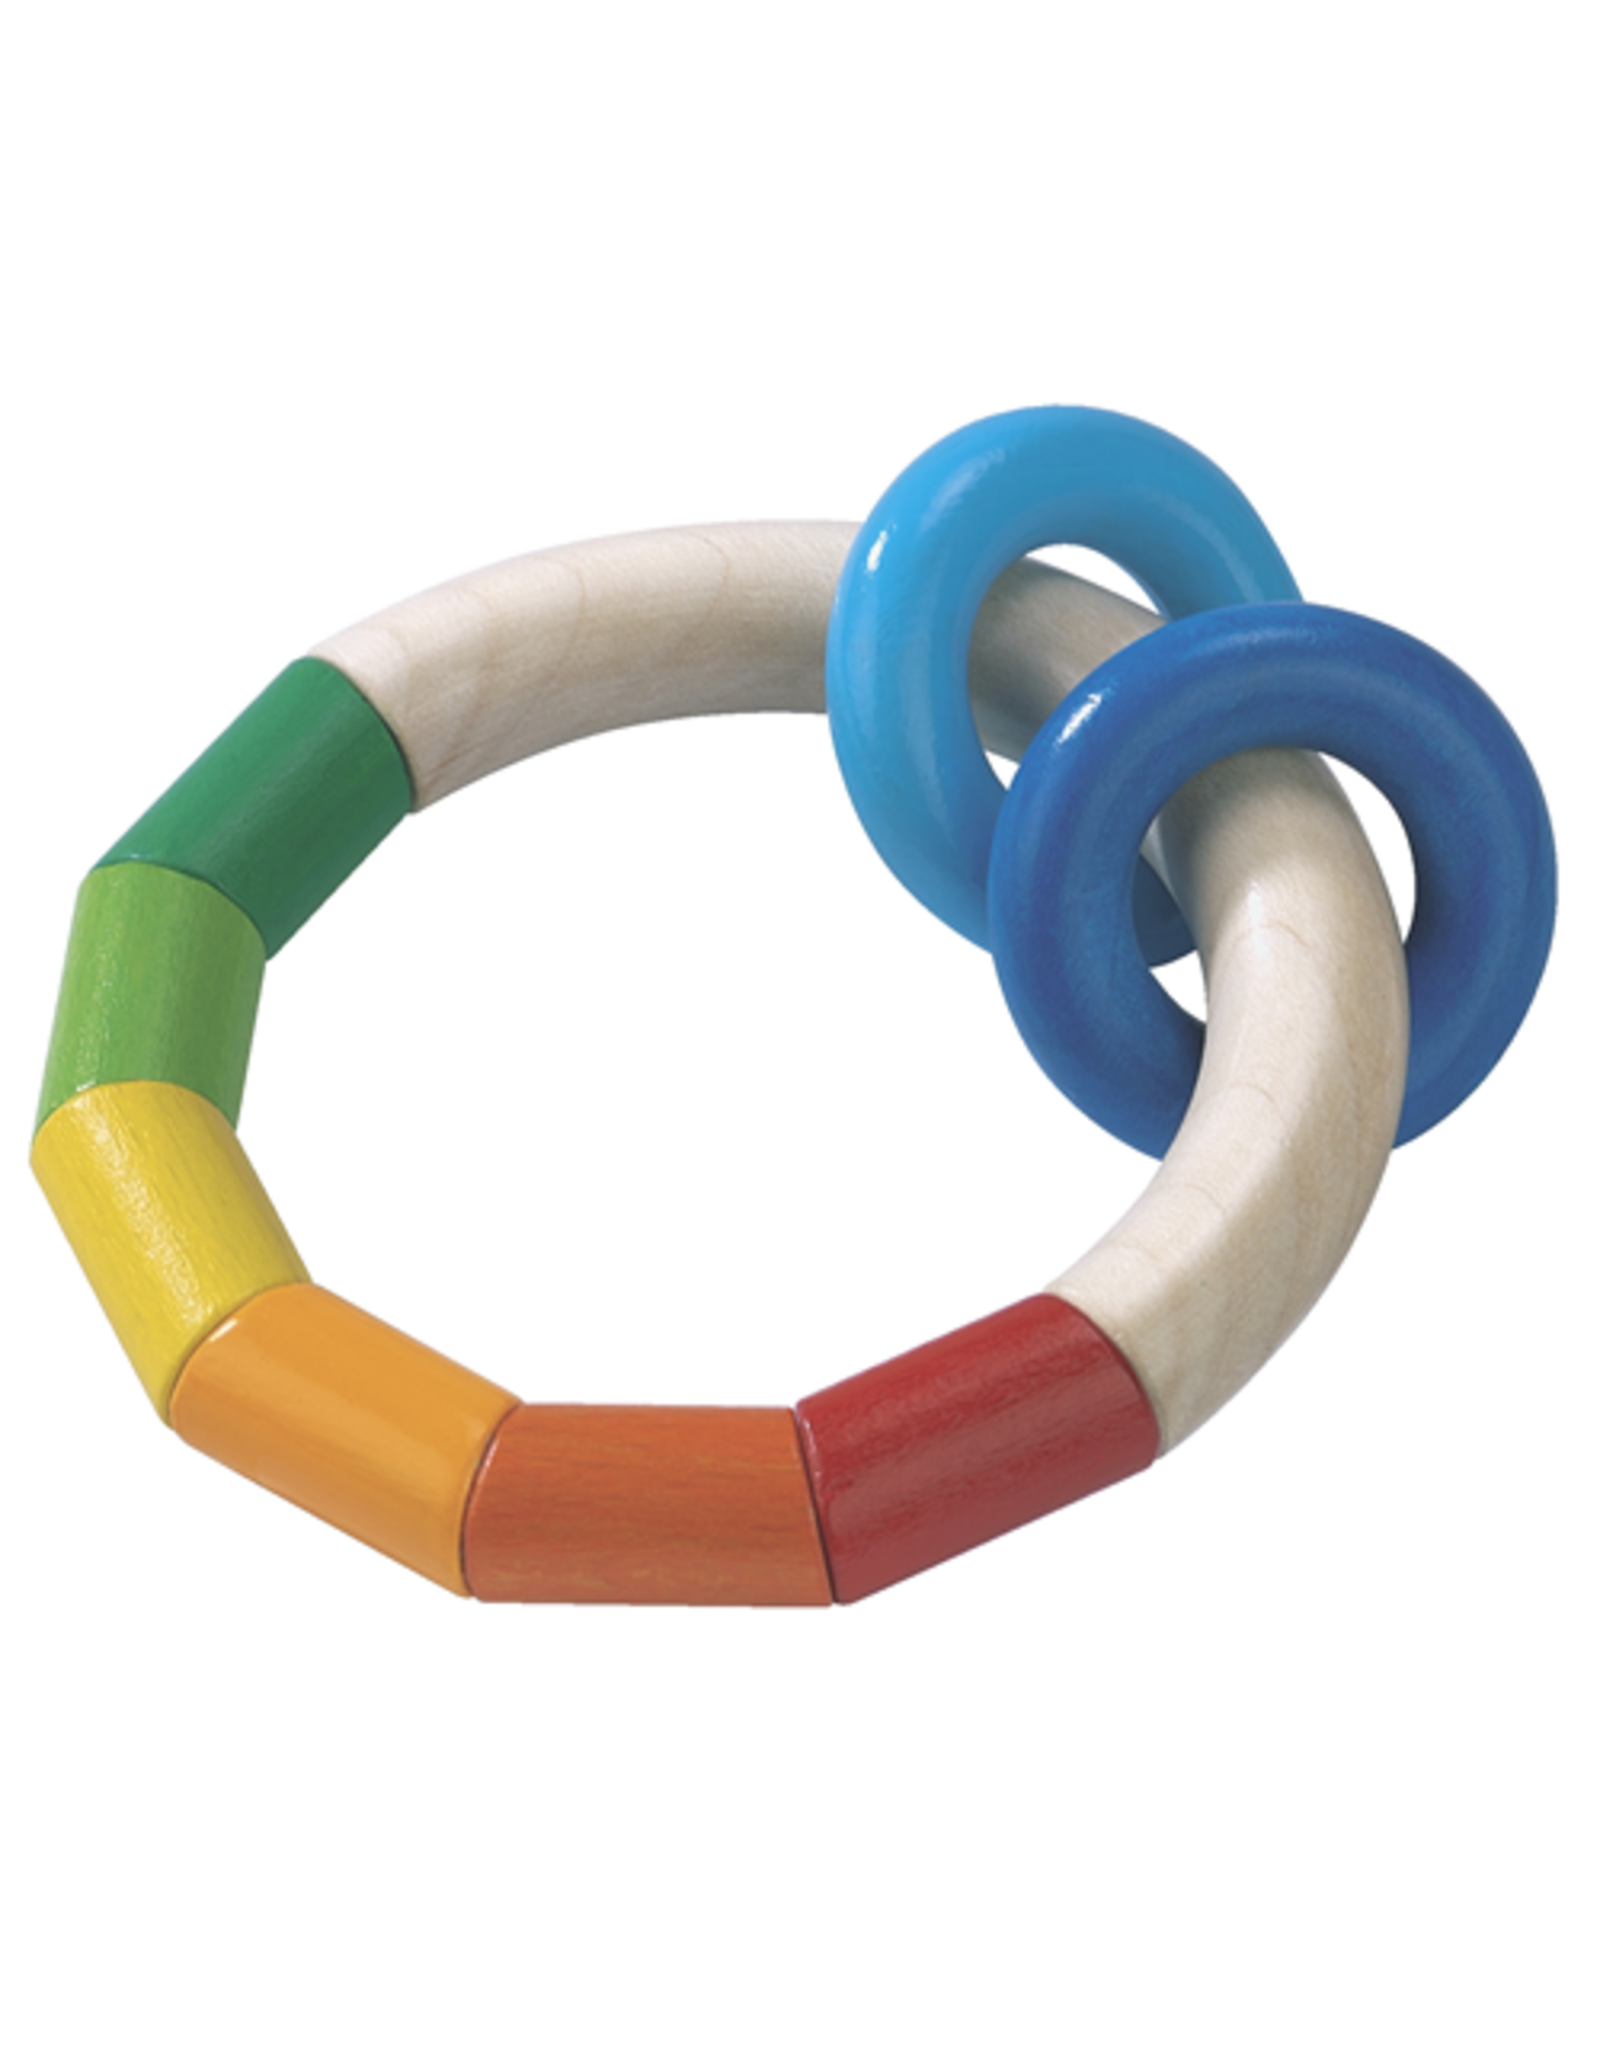 Haba Kringel Ring Clutching Toy